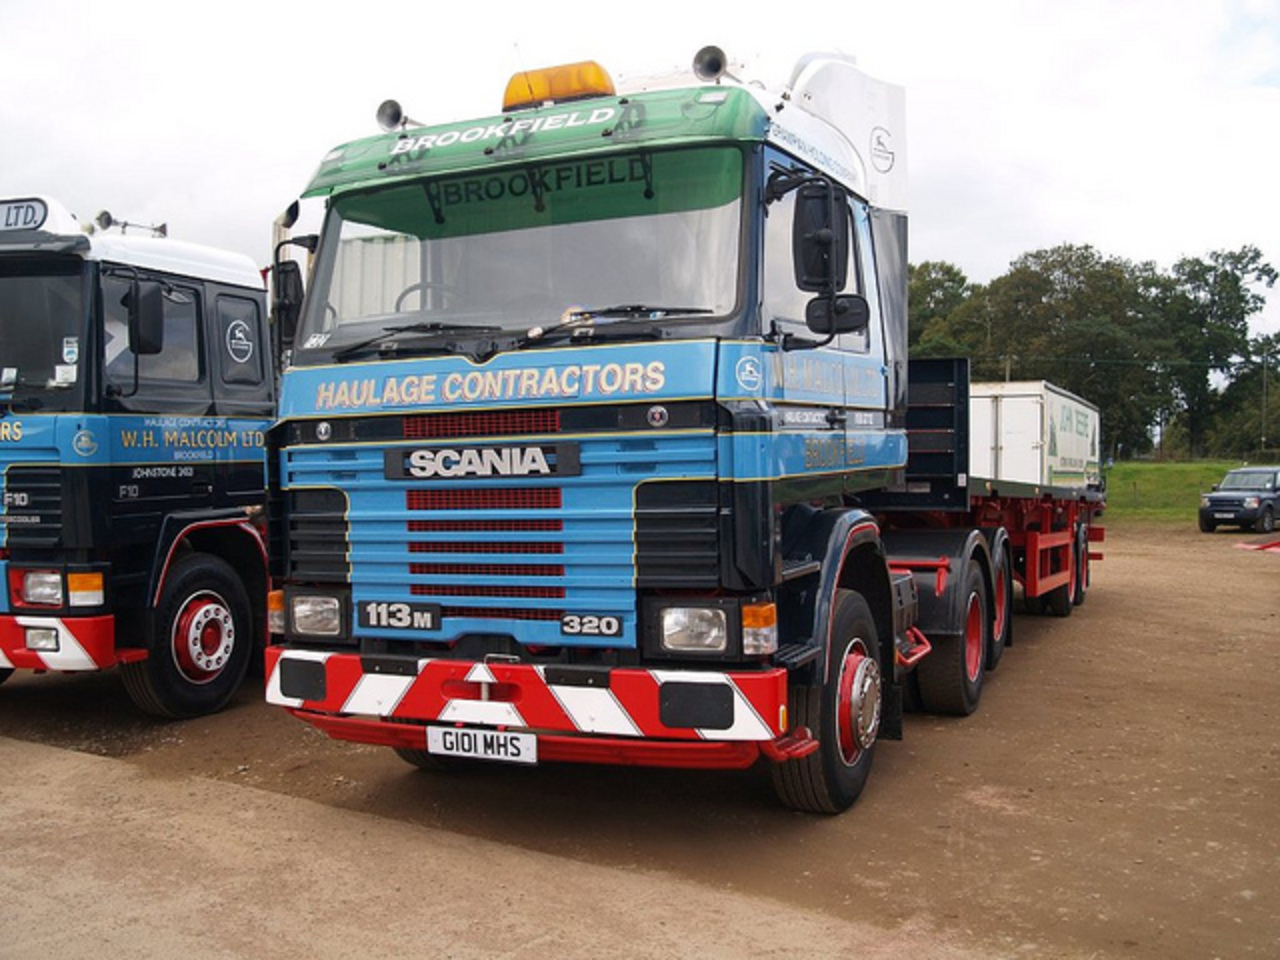 010,G101 MHS Scania 113m-320 by ronnie.cameron2009